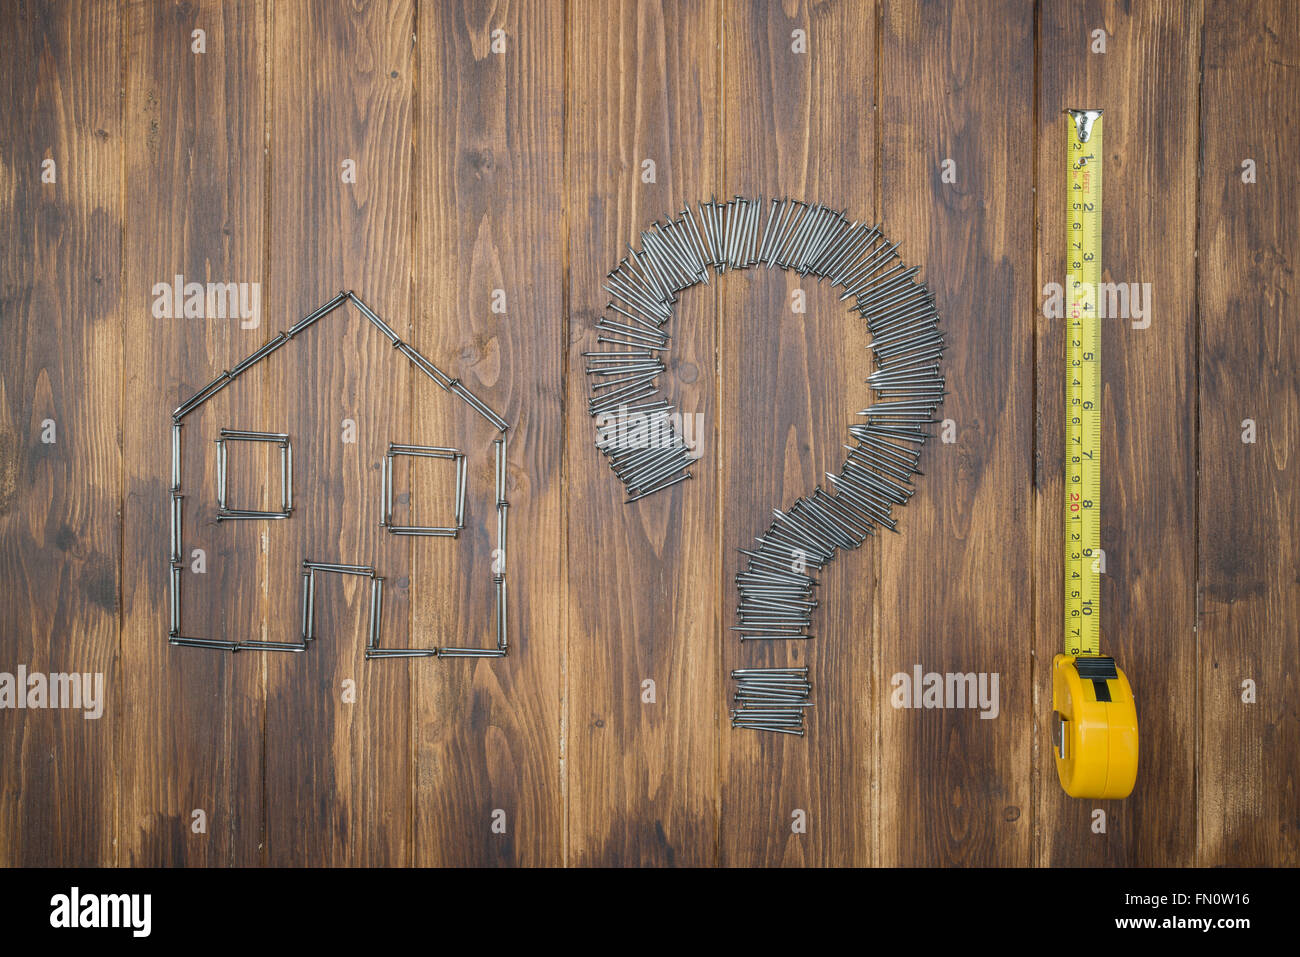 Housing measurement problem, repair by diy, Group of nail on ...